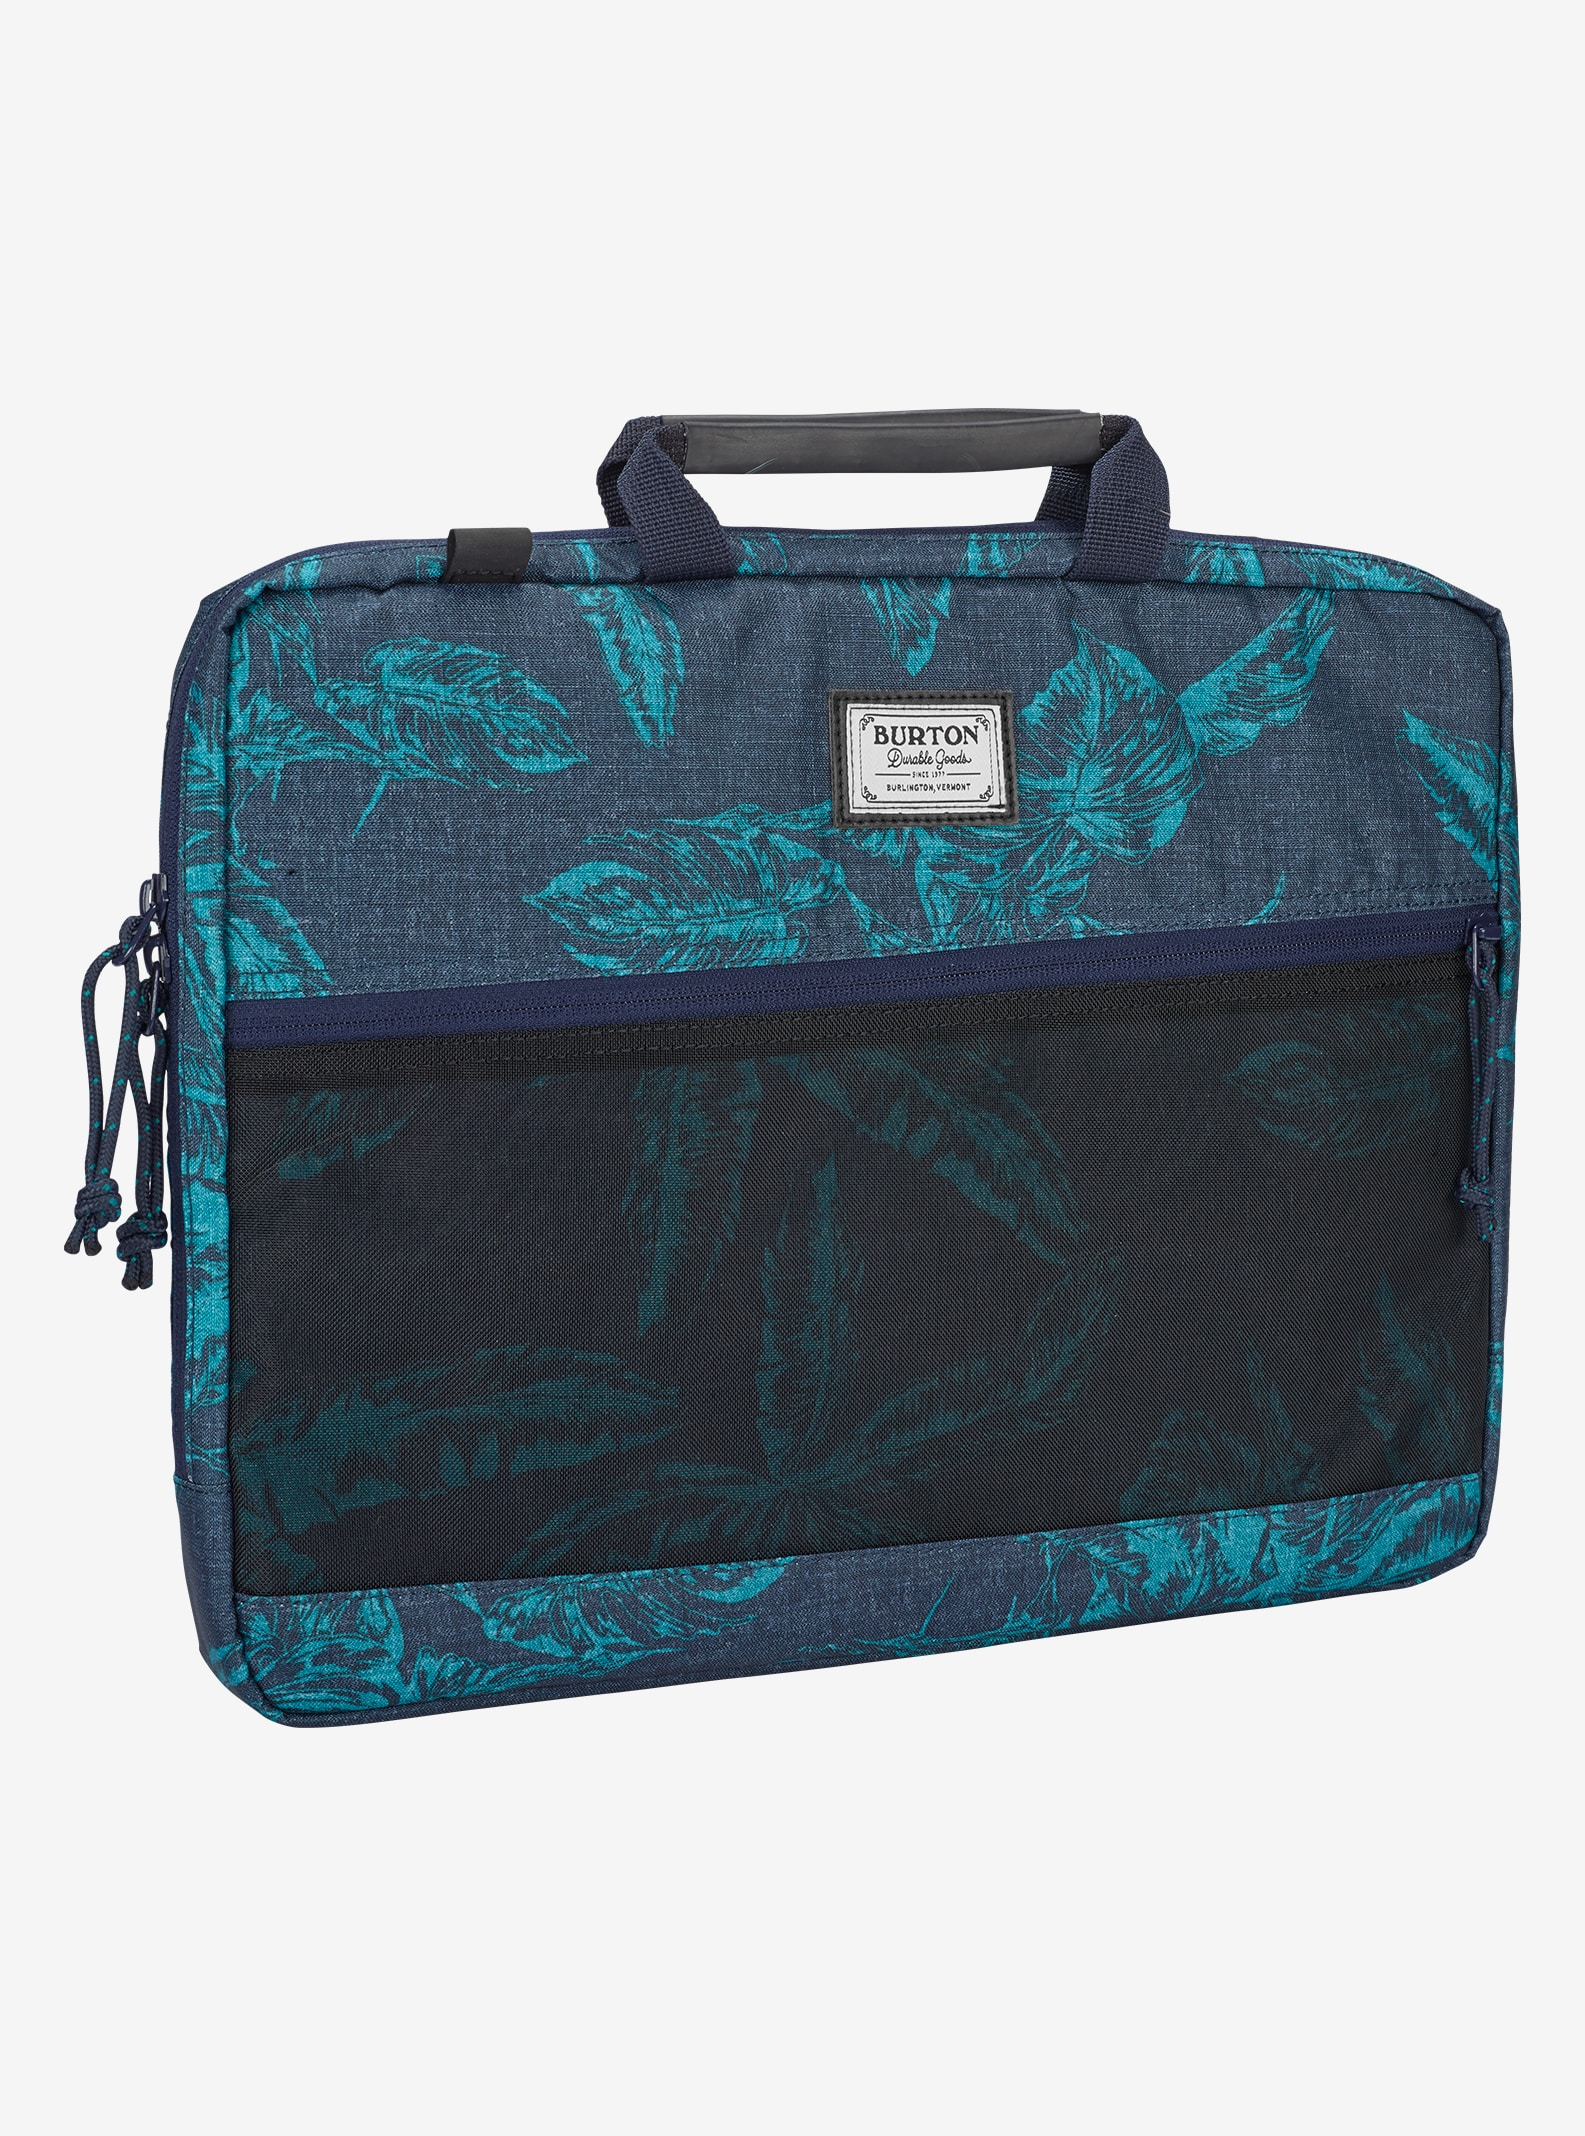 Burton Hyperlink 15in Laptop Case shown in Tropical Print